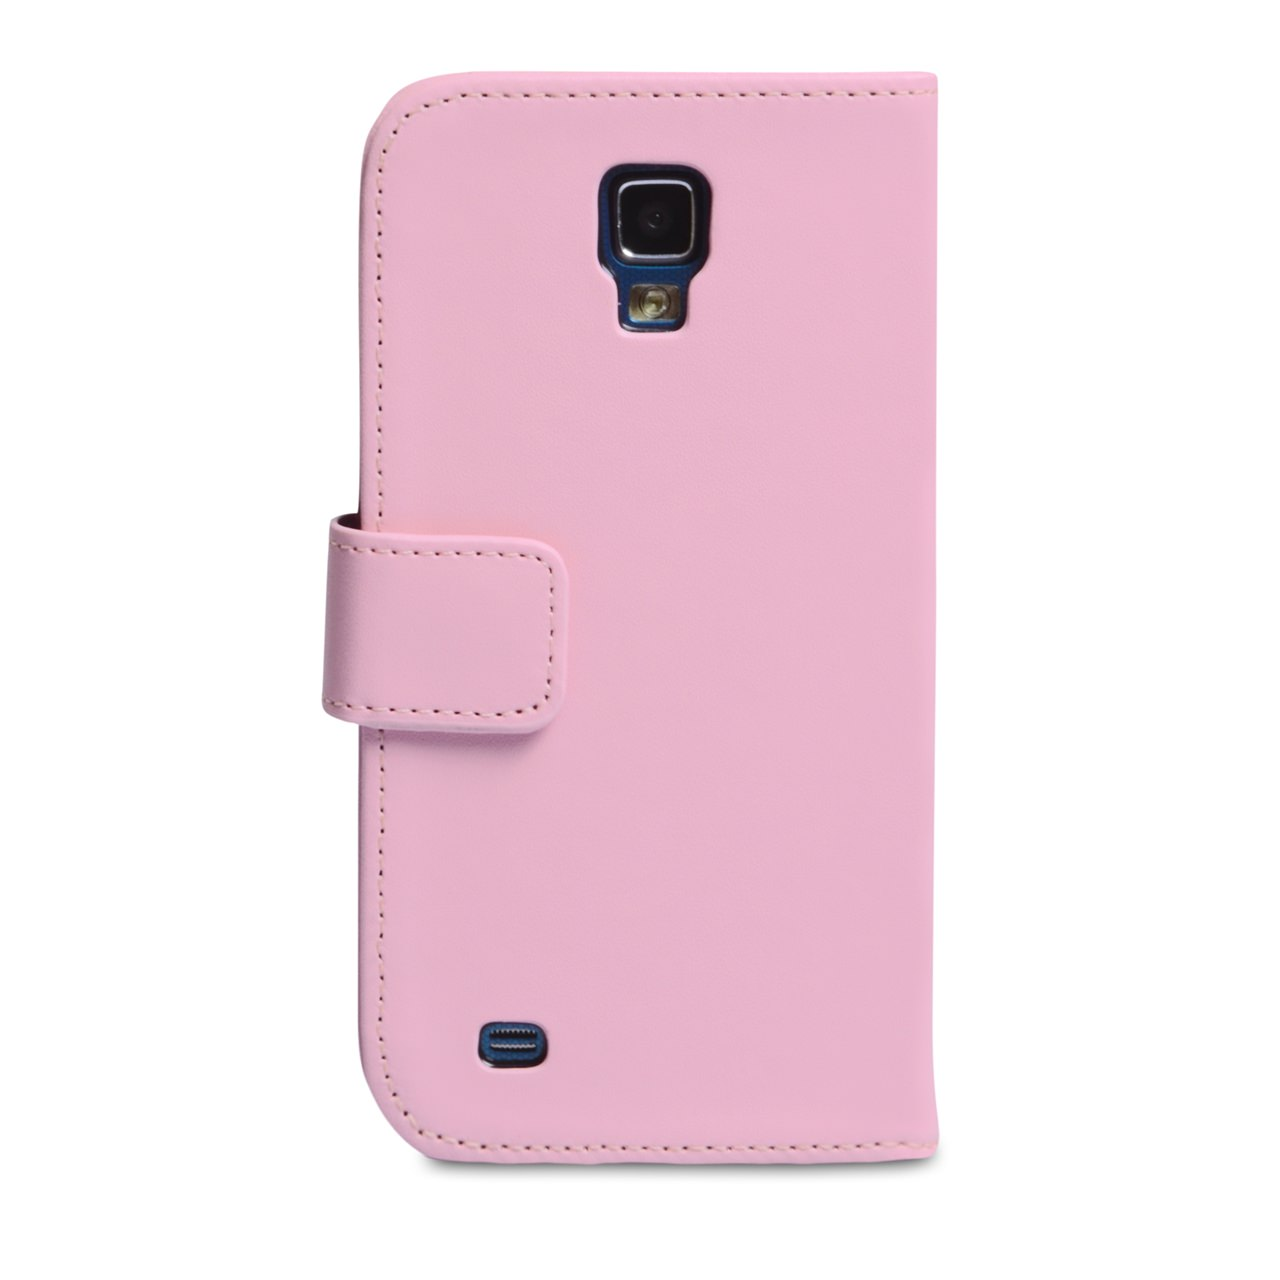 YouSave Samsung Galaxy S4 Active Leather Effect Wallet Case Baby Pink